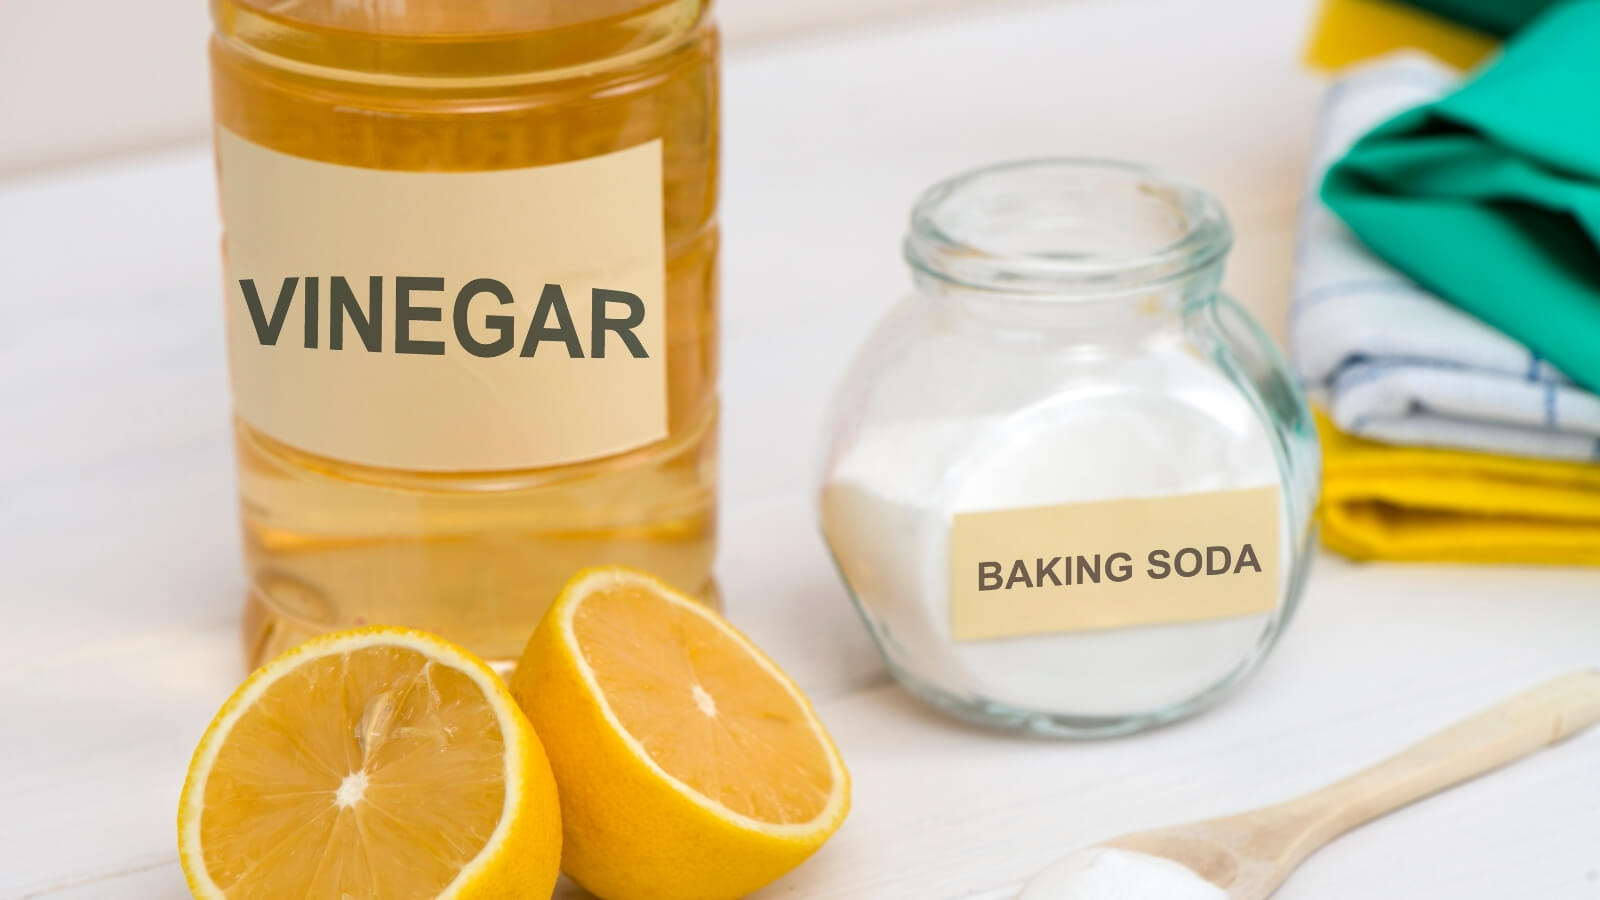 vinegar and baking soda cleaners